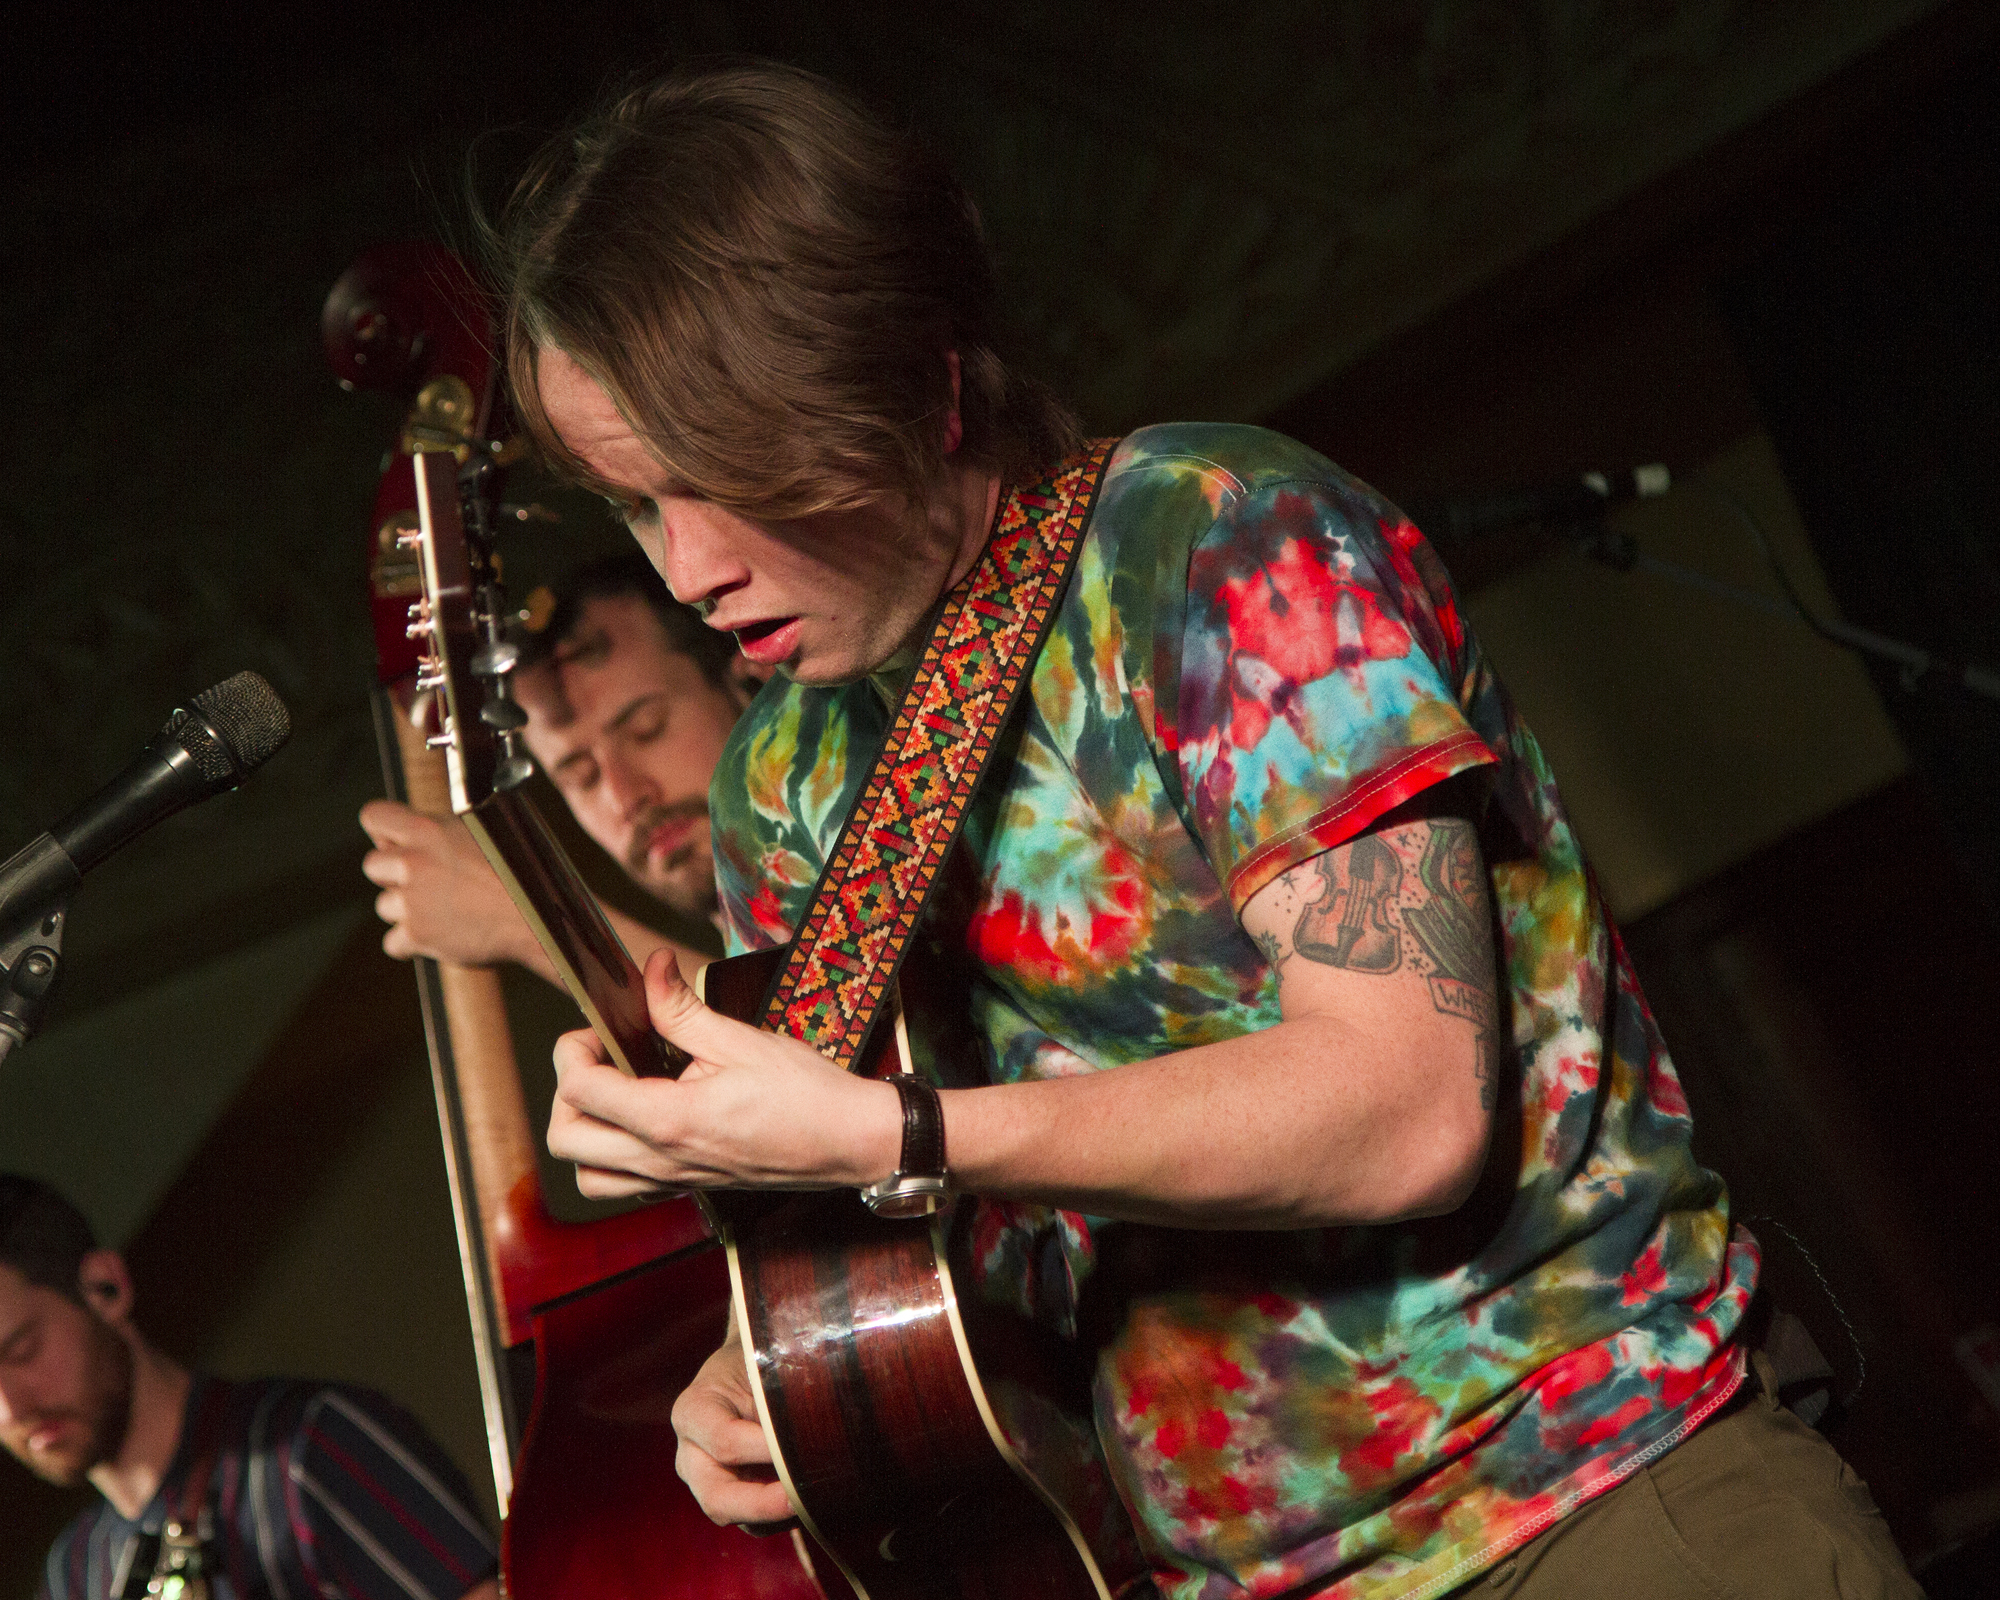 PHOTOS Billy Strings at F M Kirby Center in Wilkes Barre 01 29 18